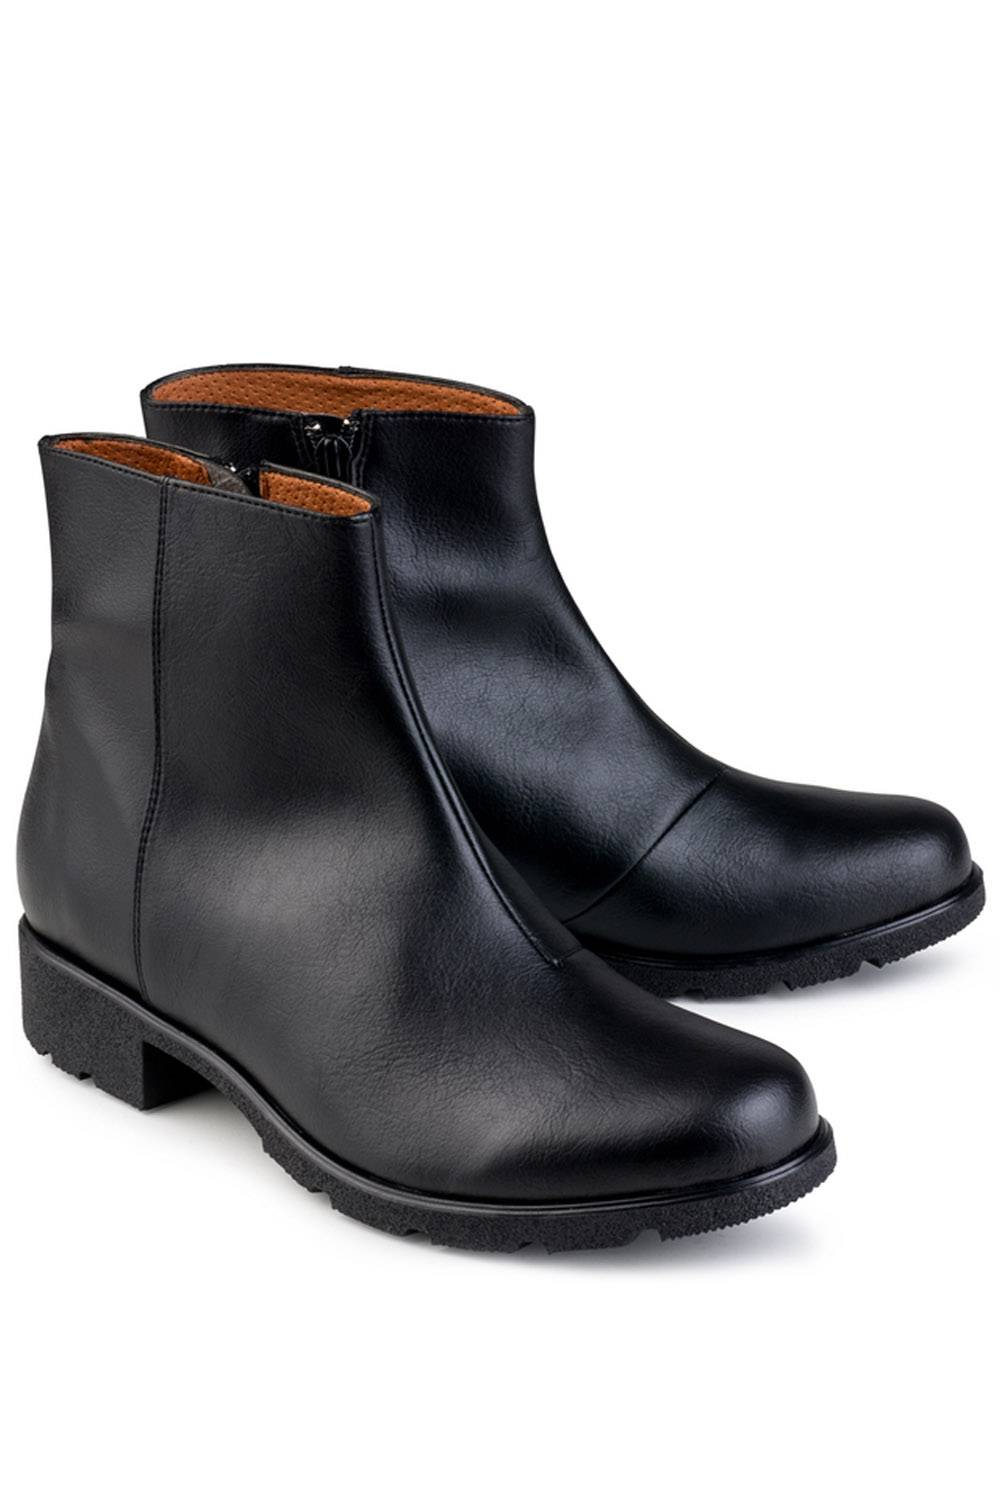 eco vegan shoes leather boots